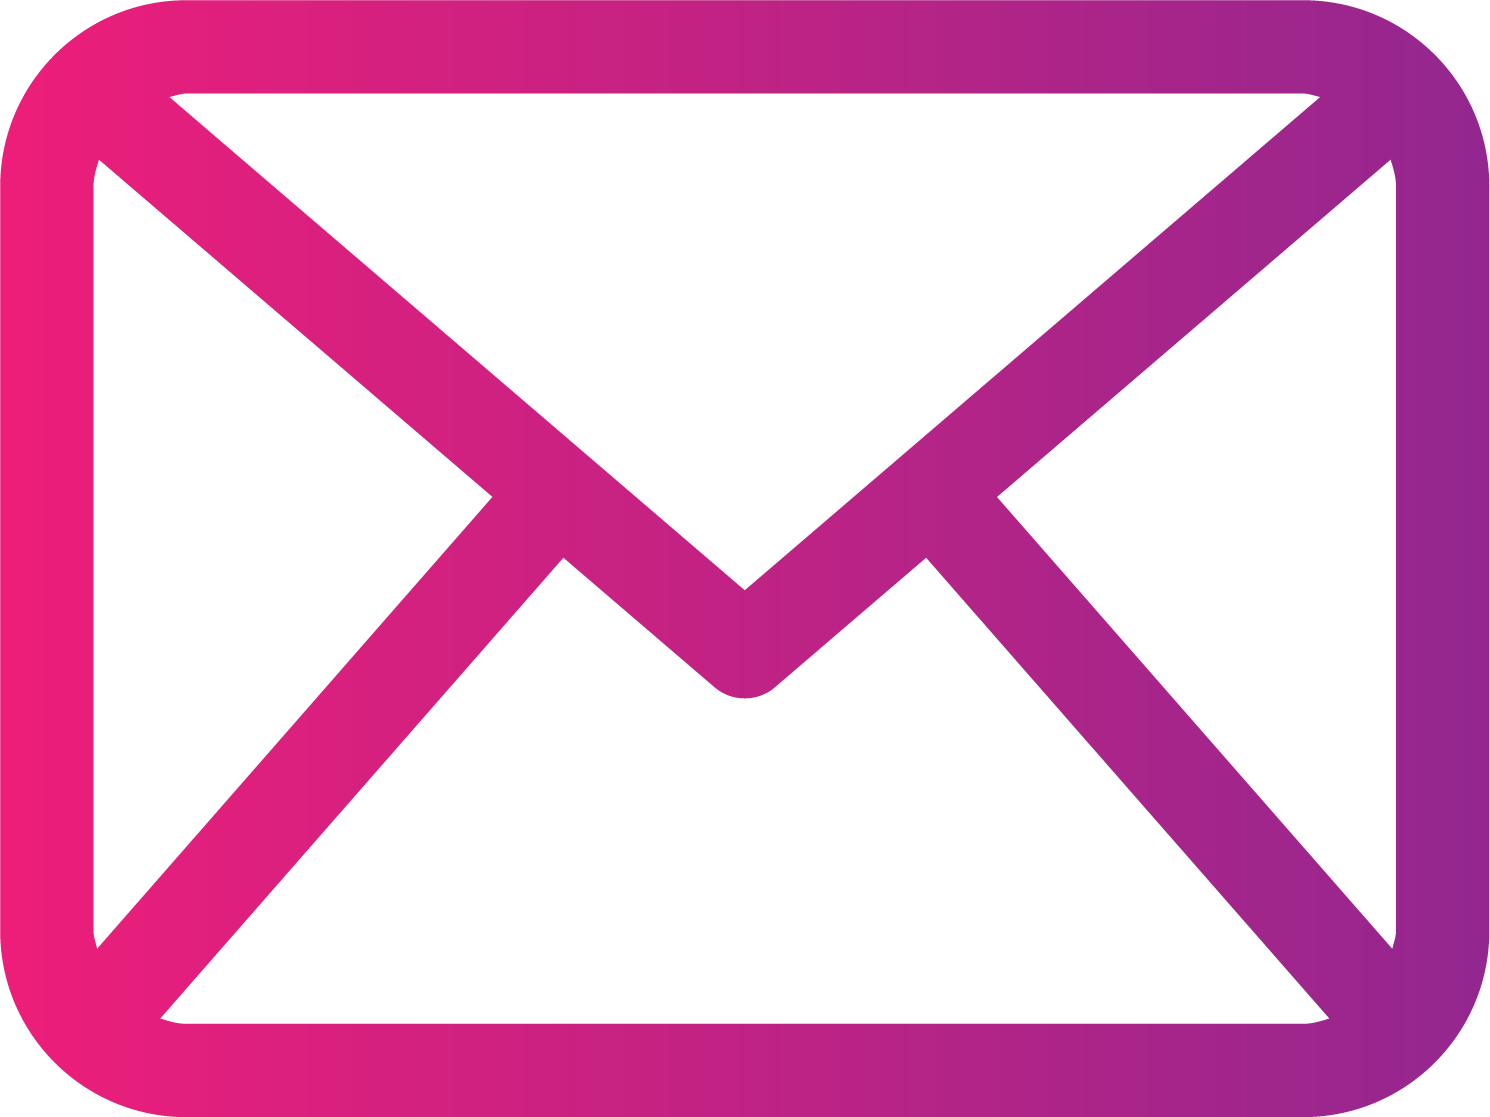 Email png images marketing. Mail clipart pink